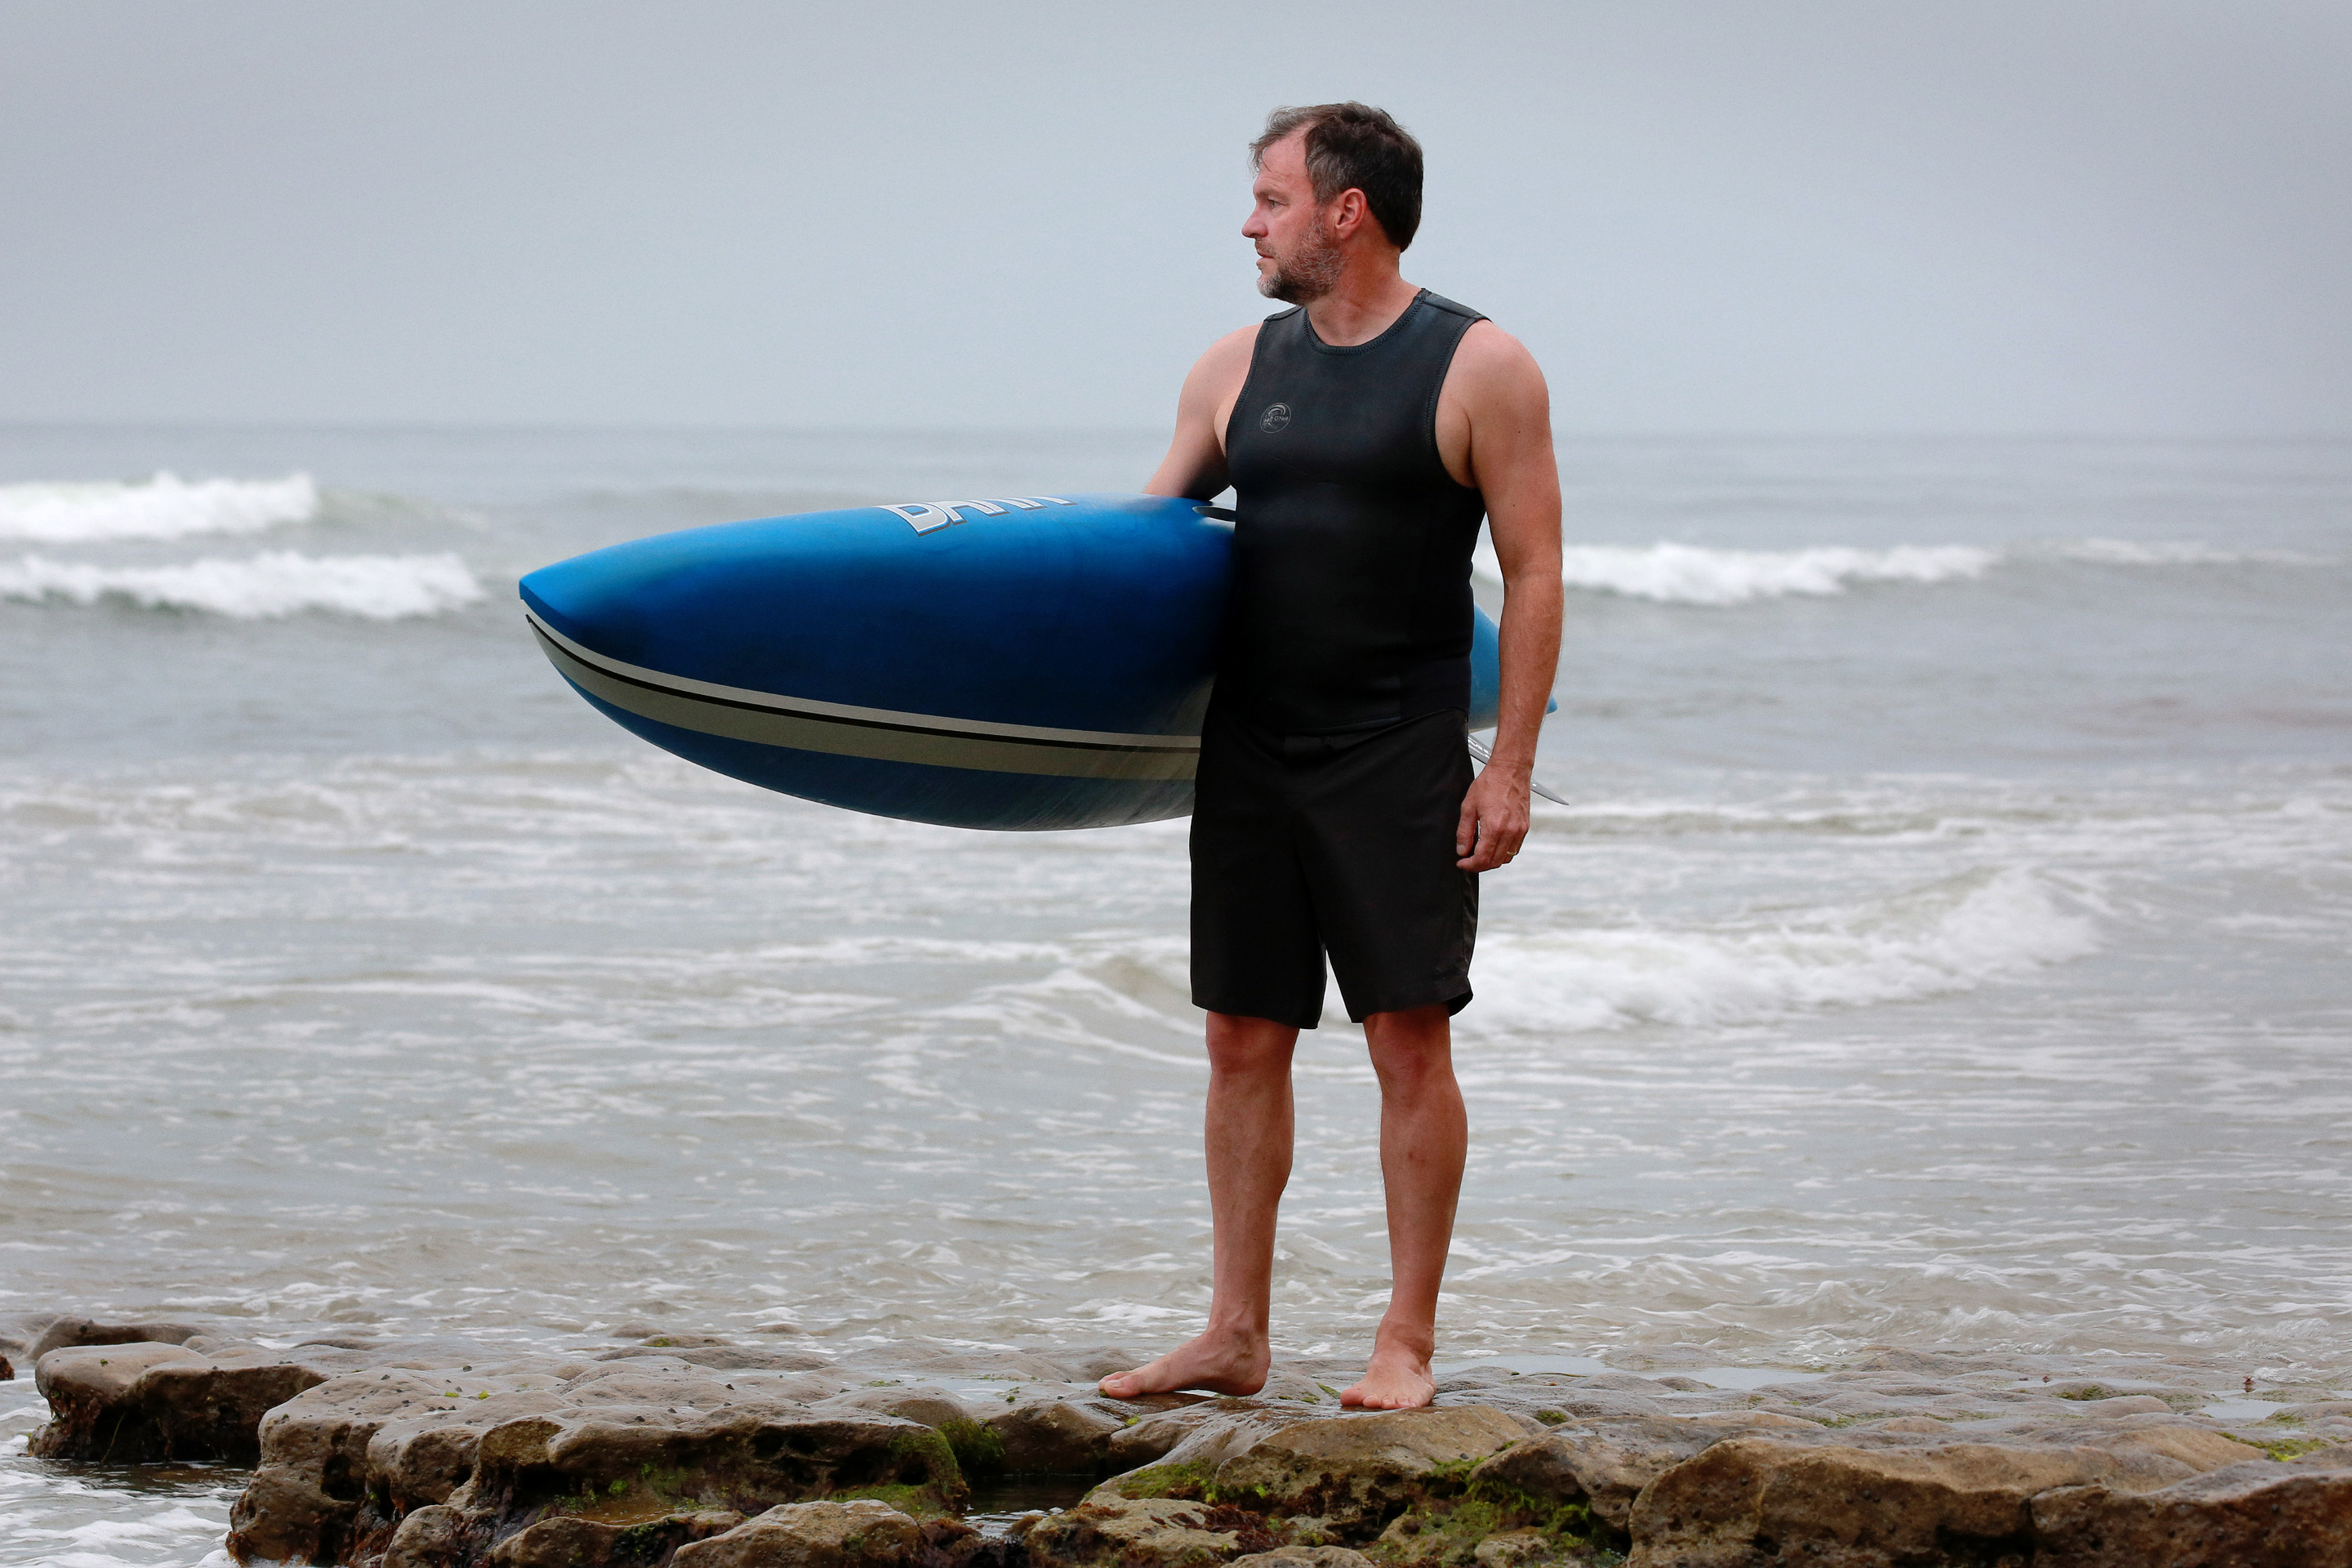 Craig Callender holding a paddleboard at the beach.